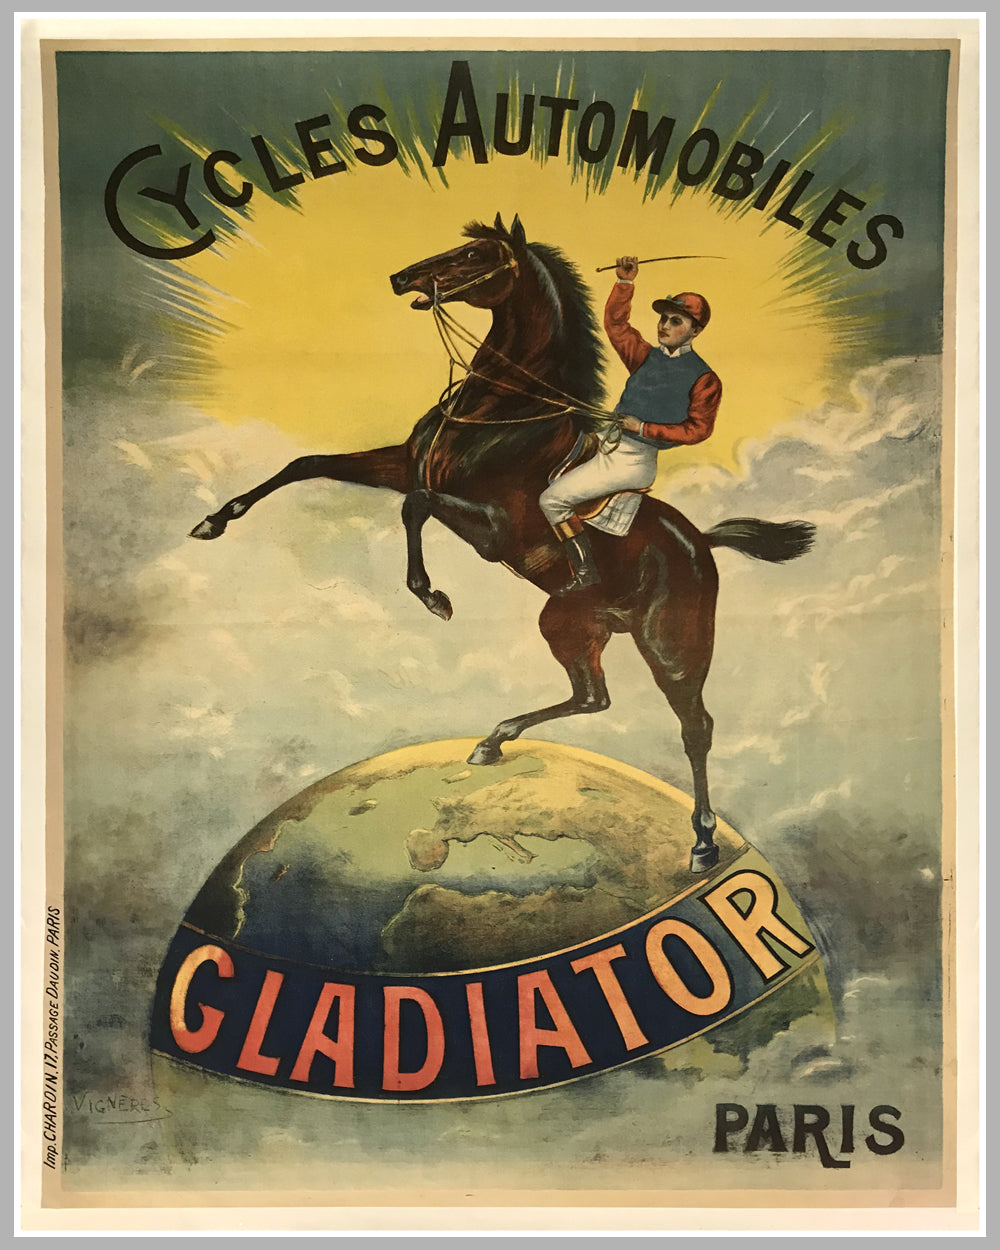 Cycles Automobiles Gladiator large original poster ca. 1905 by Vigneres